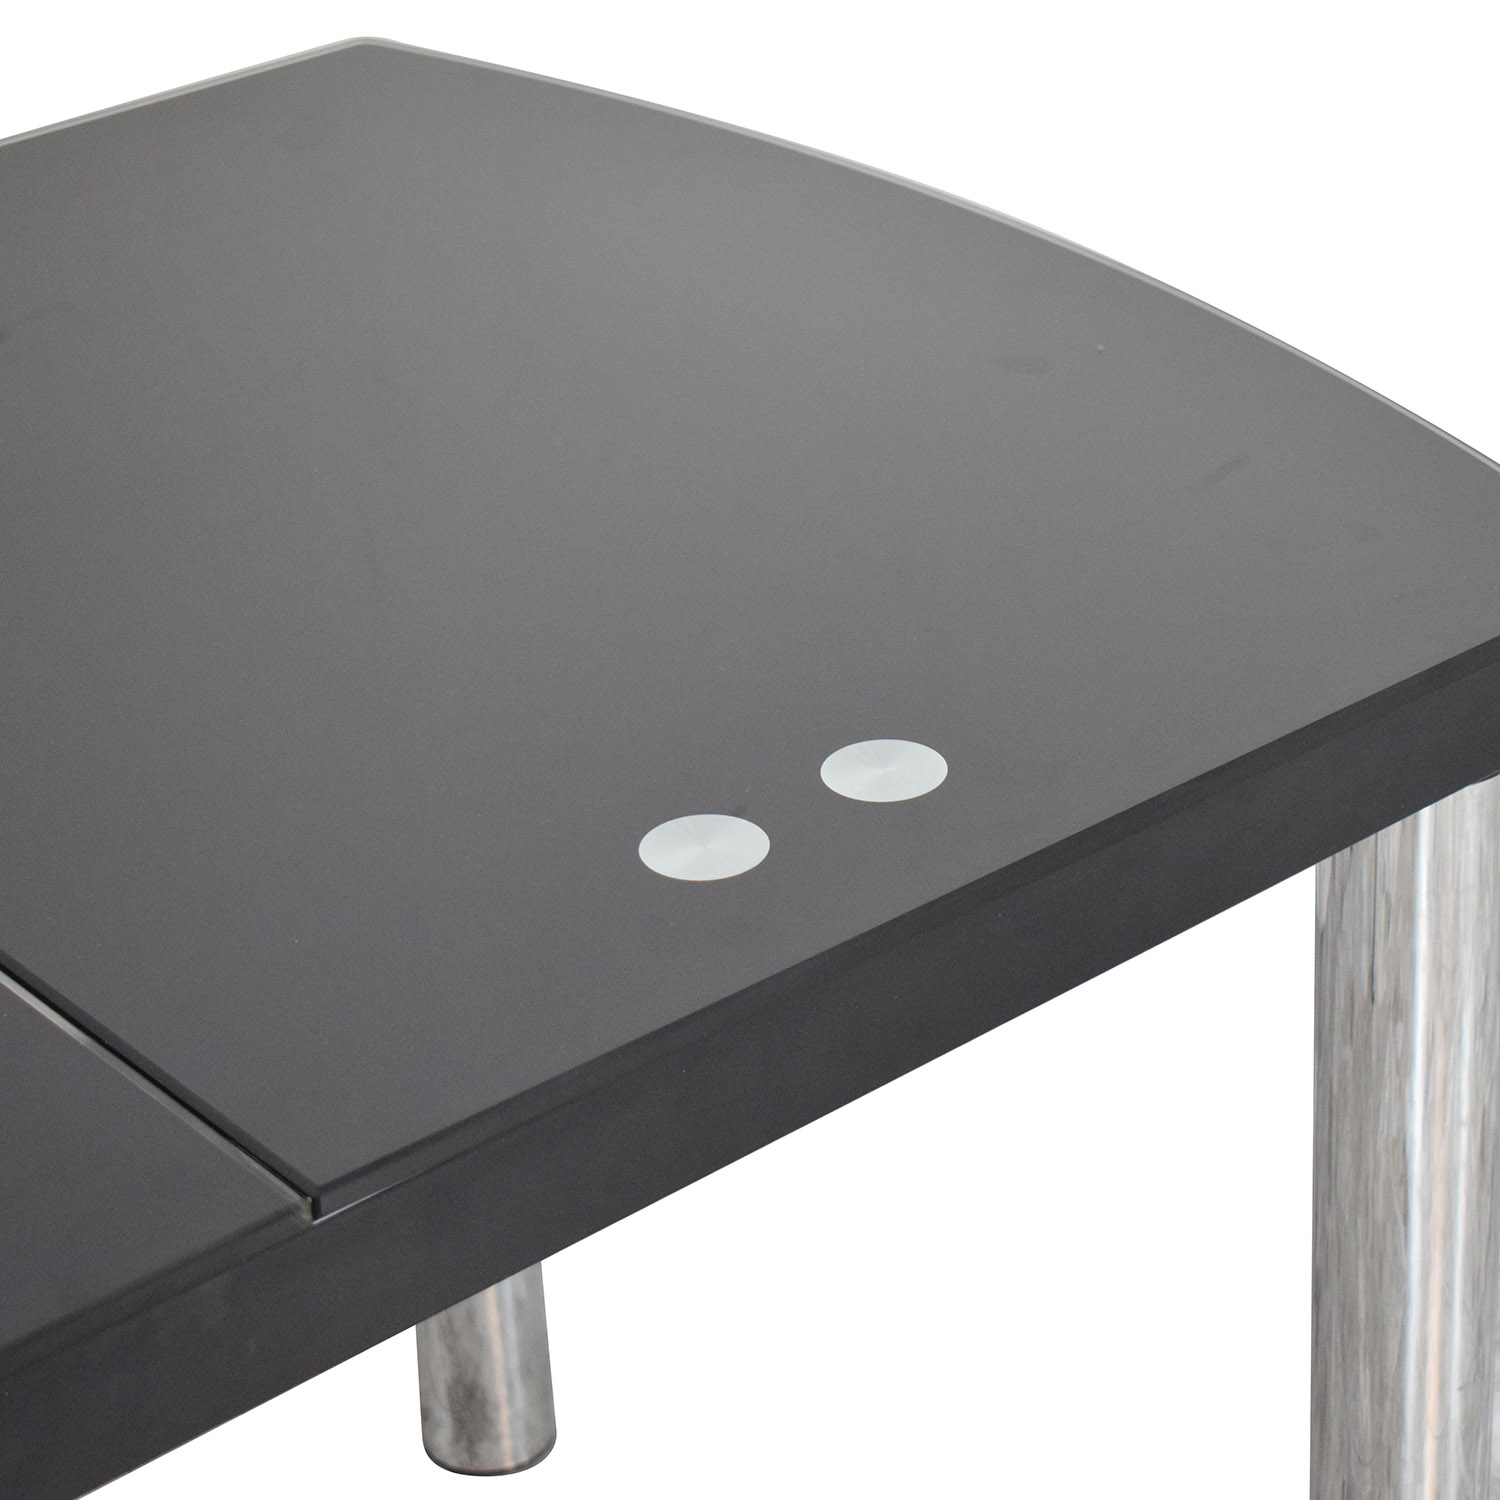 Structube Structube Extendable Dining Table pa